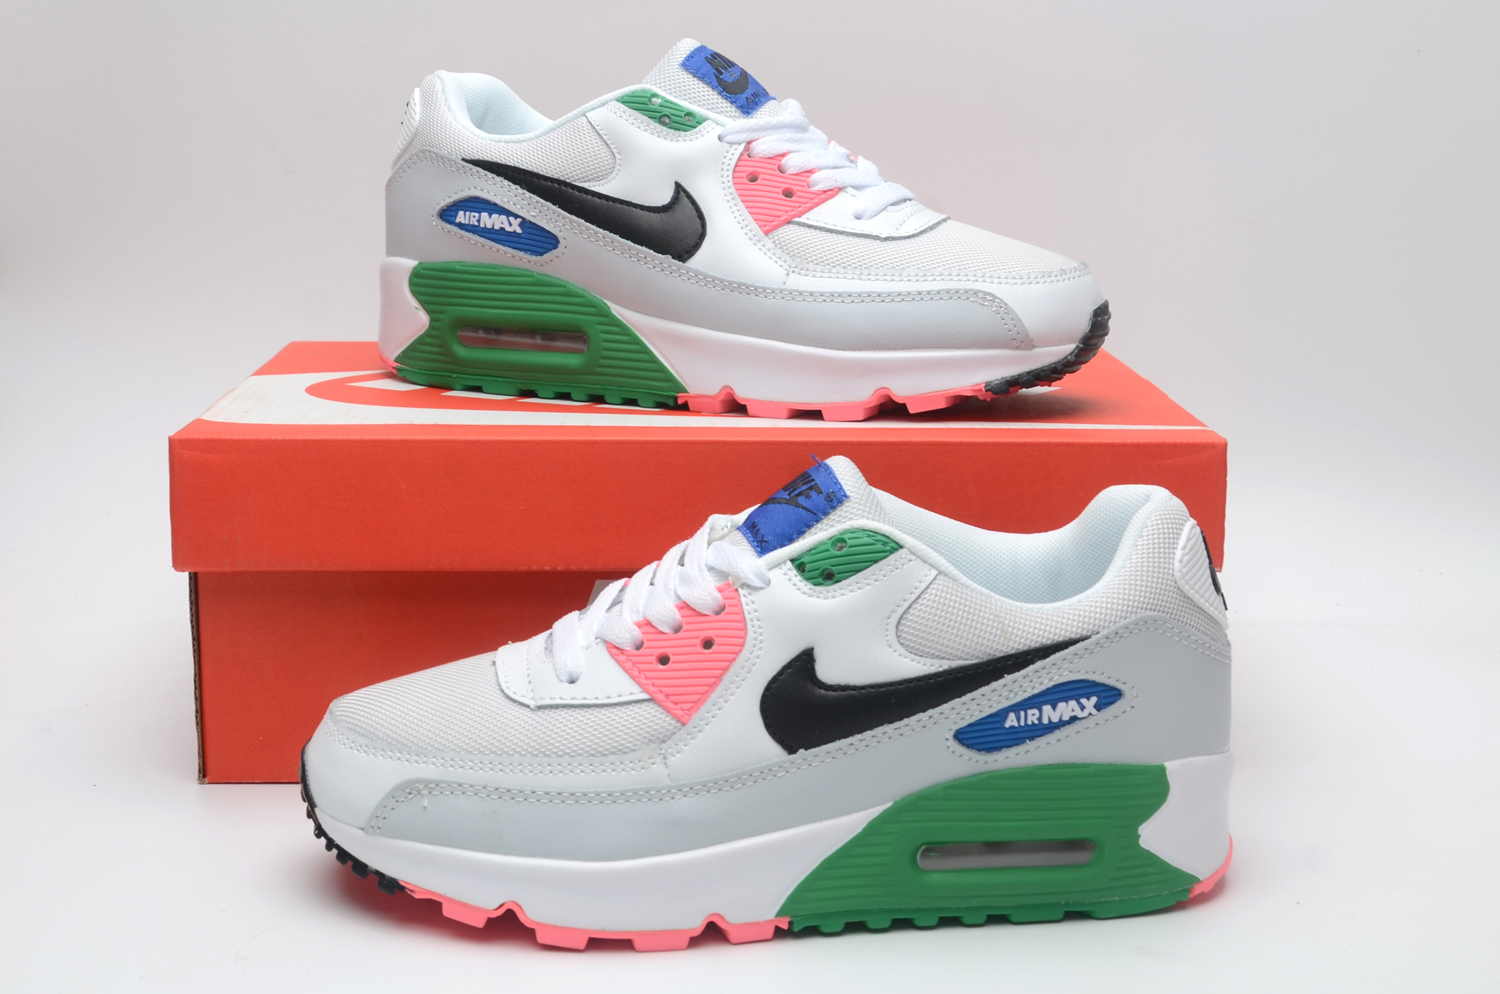 Women's Running weapon Air Max 90 Shoes 038